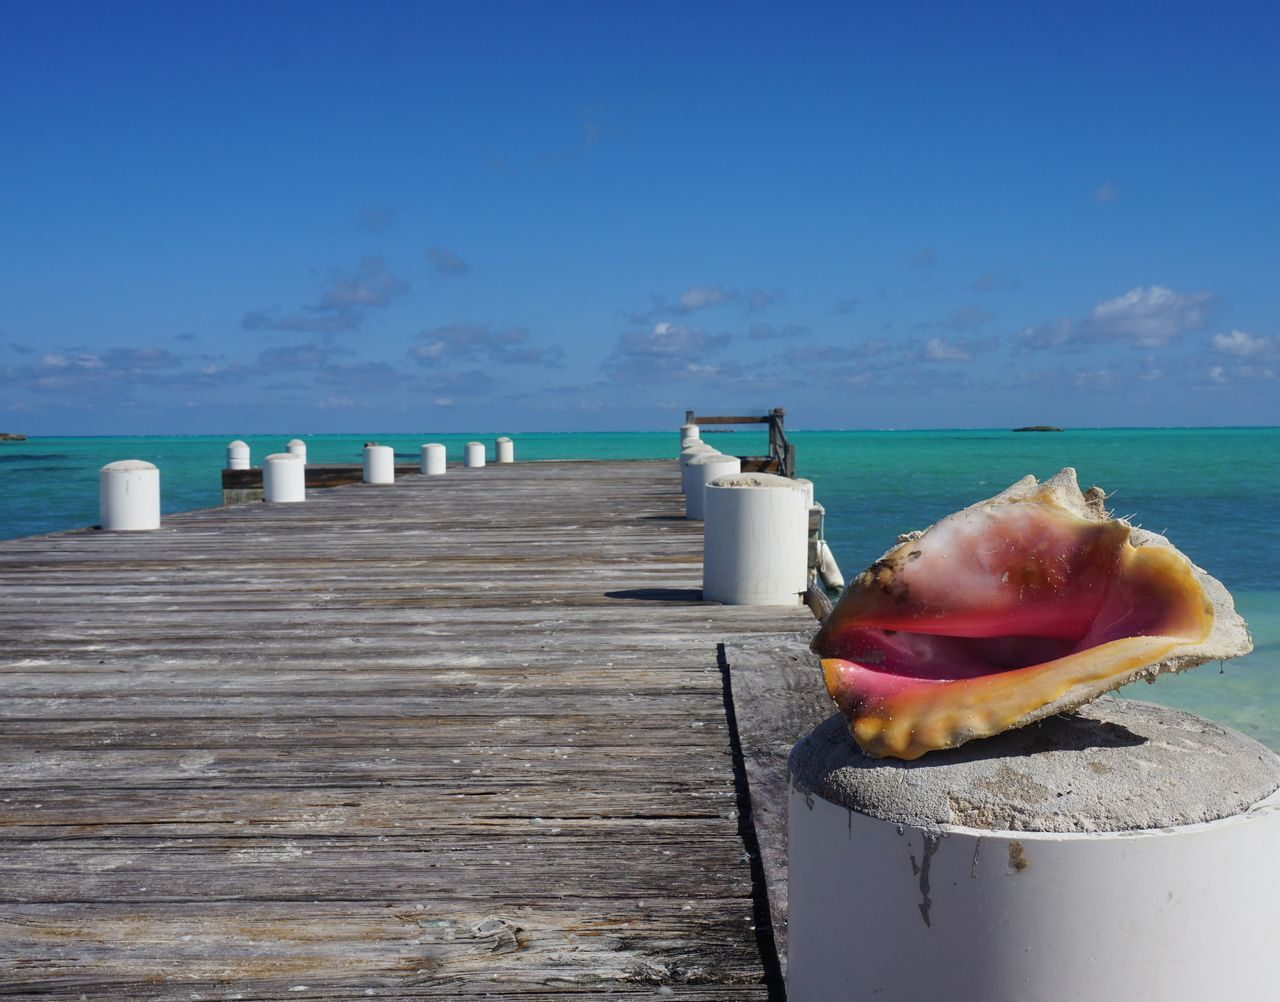 Unfiltered Turks And Caicos Turks And Caicos Islands Sea Horizon Over Water Blue Day Sky No People Nature Water Outdoors Conch Island Dock Lovethesea EyeEmNewHere